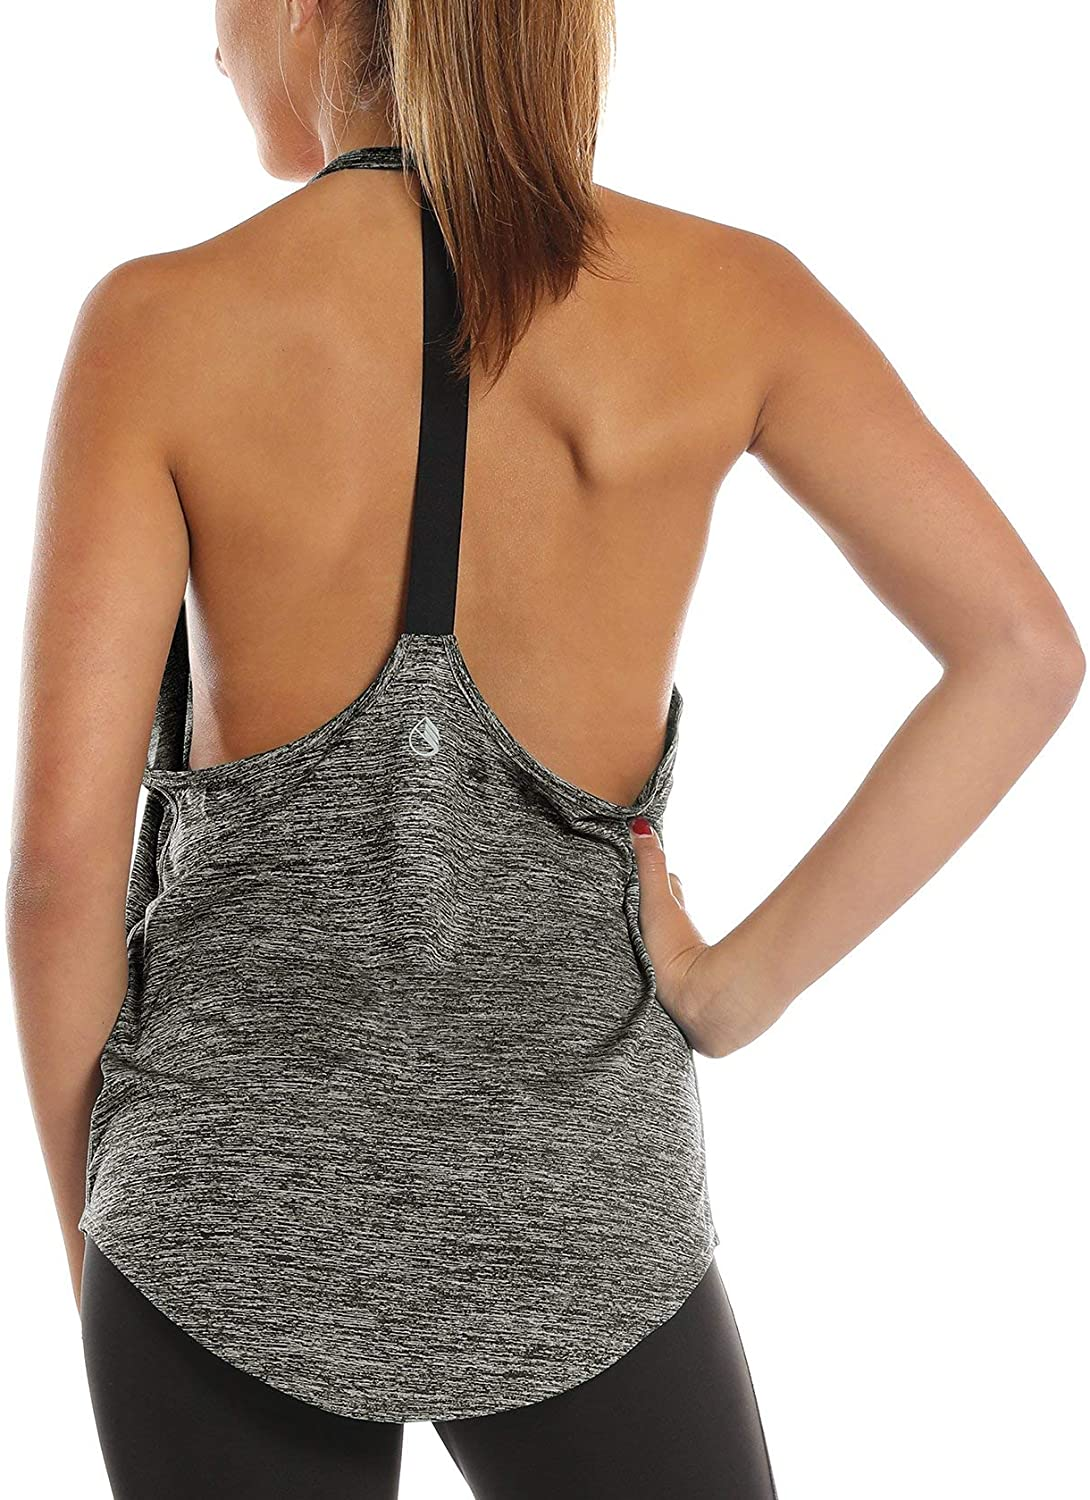 icyzone Camiseta Deportiva sin Mangas Dise/ño de T-Back para Mujer